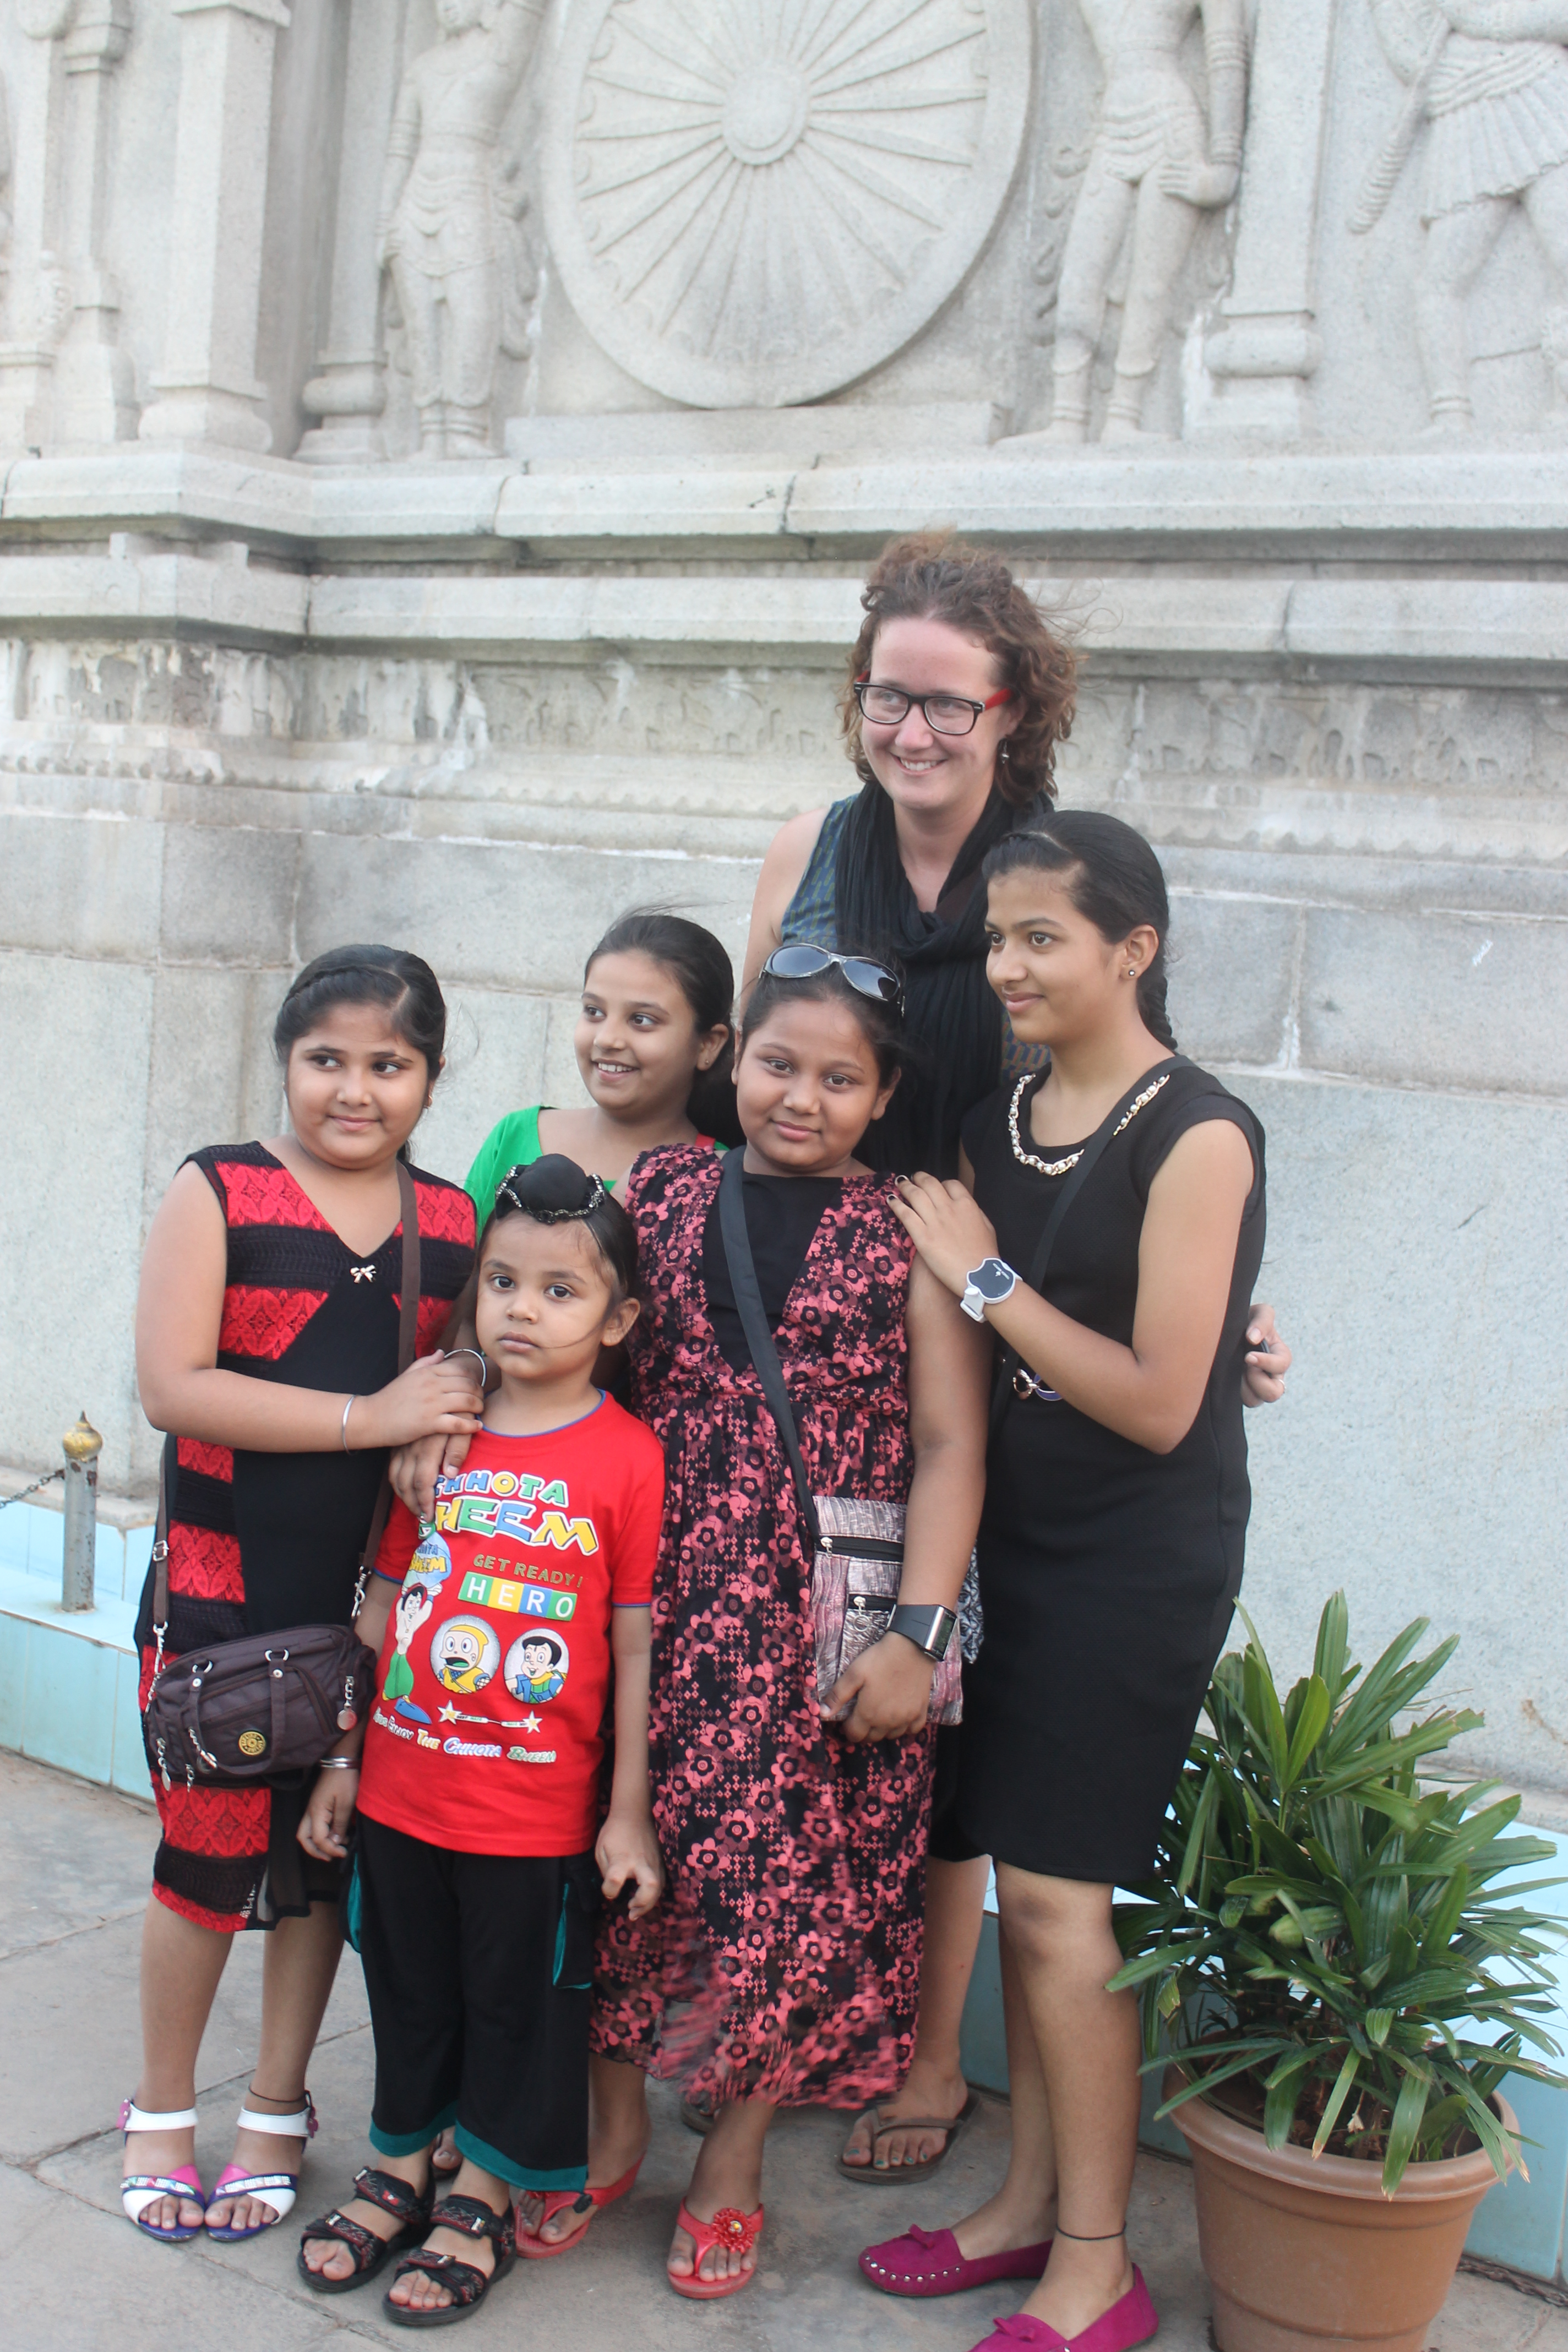 A Photo Of Some Children Who Asked For My Name When We Were On Land,